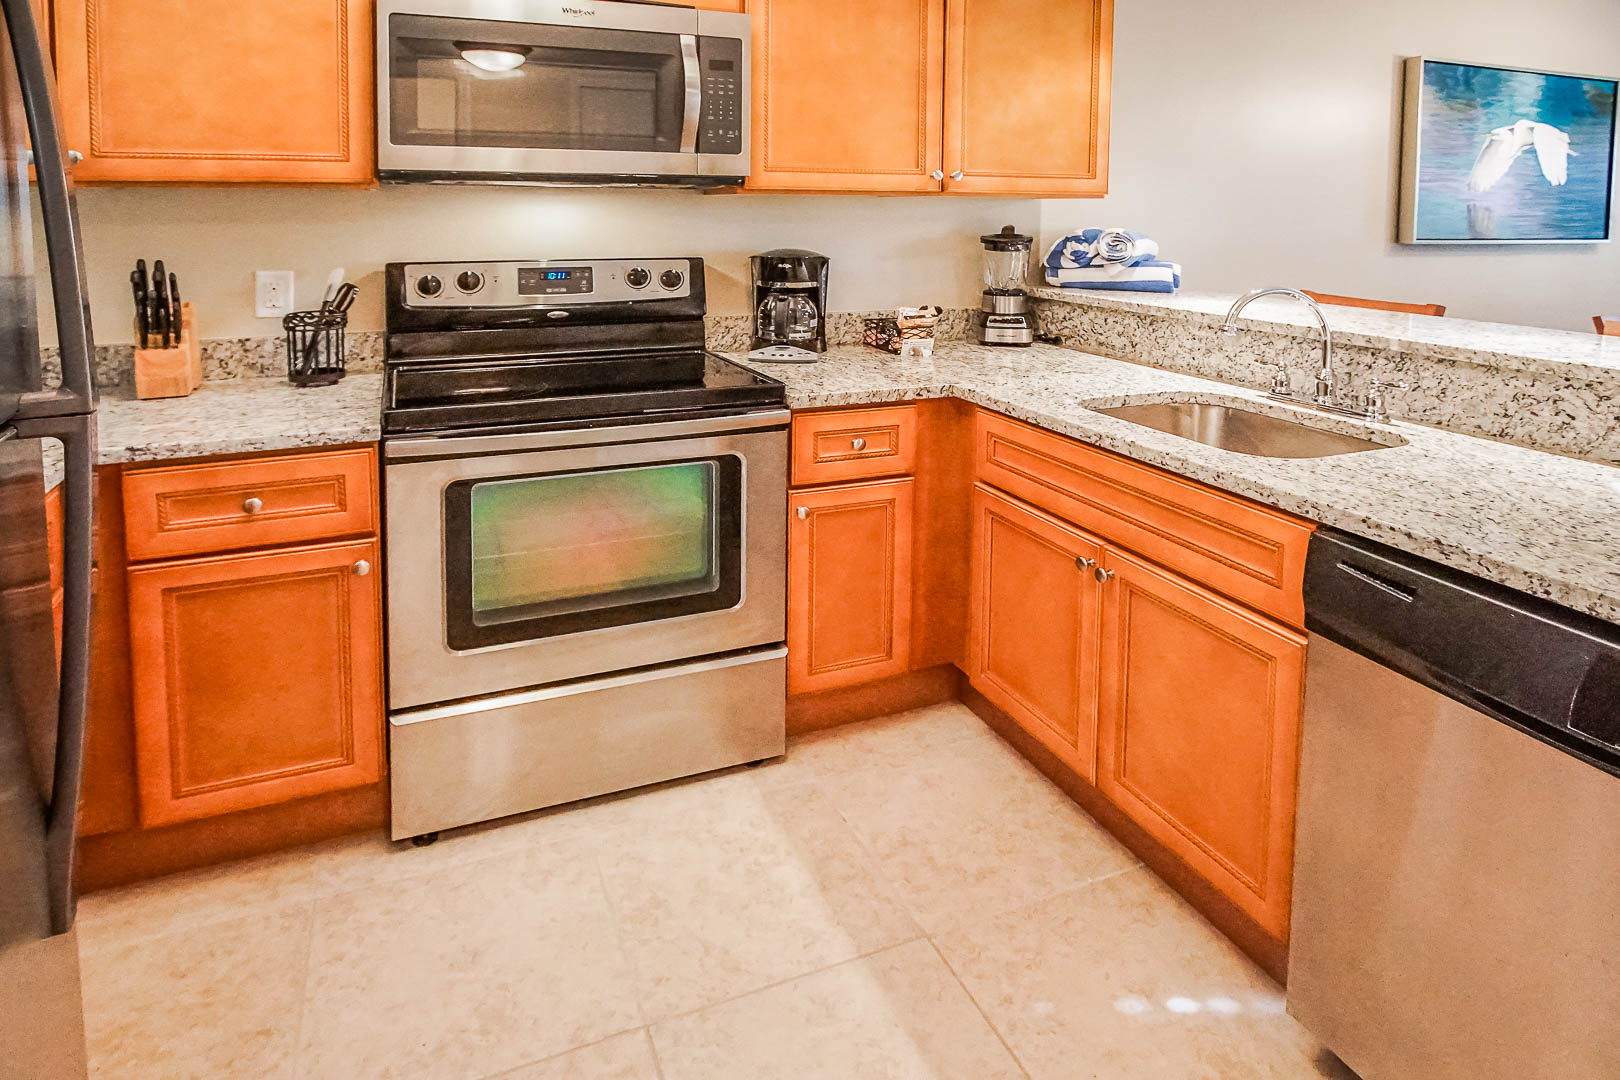 A spacious kitchen area at VRI's Fantasy World Resort in Florida.